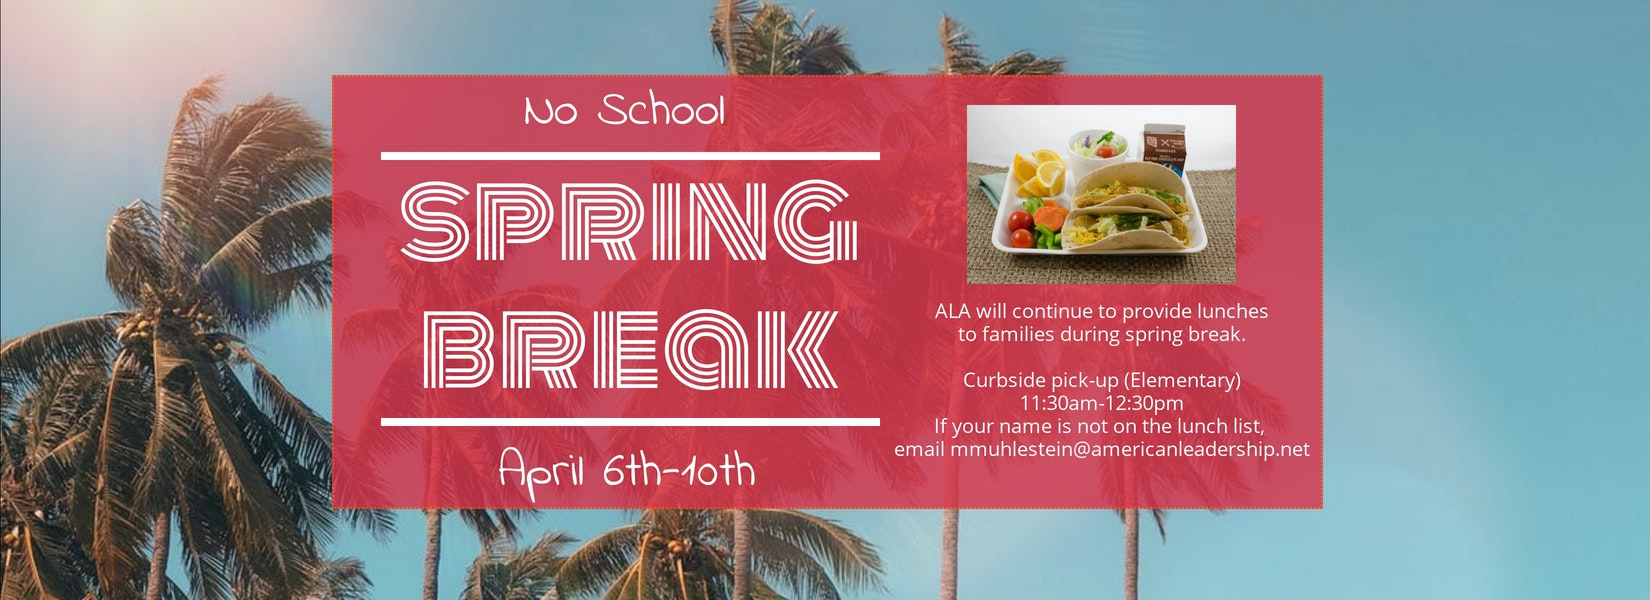 Spring-Break-WEB-1